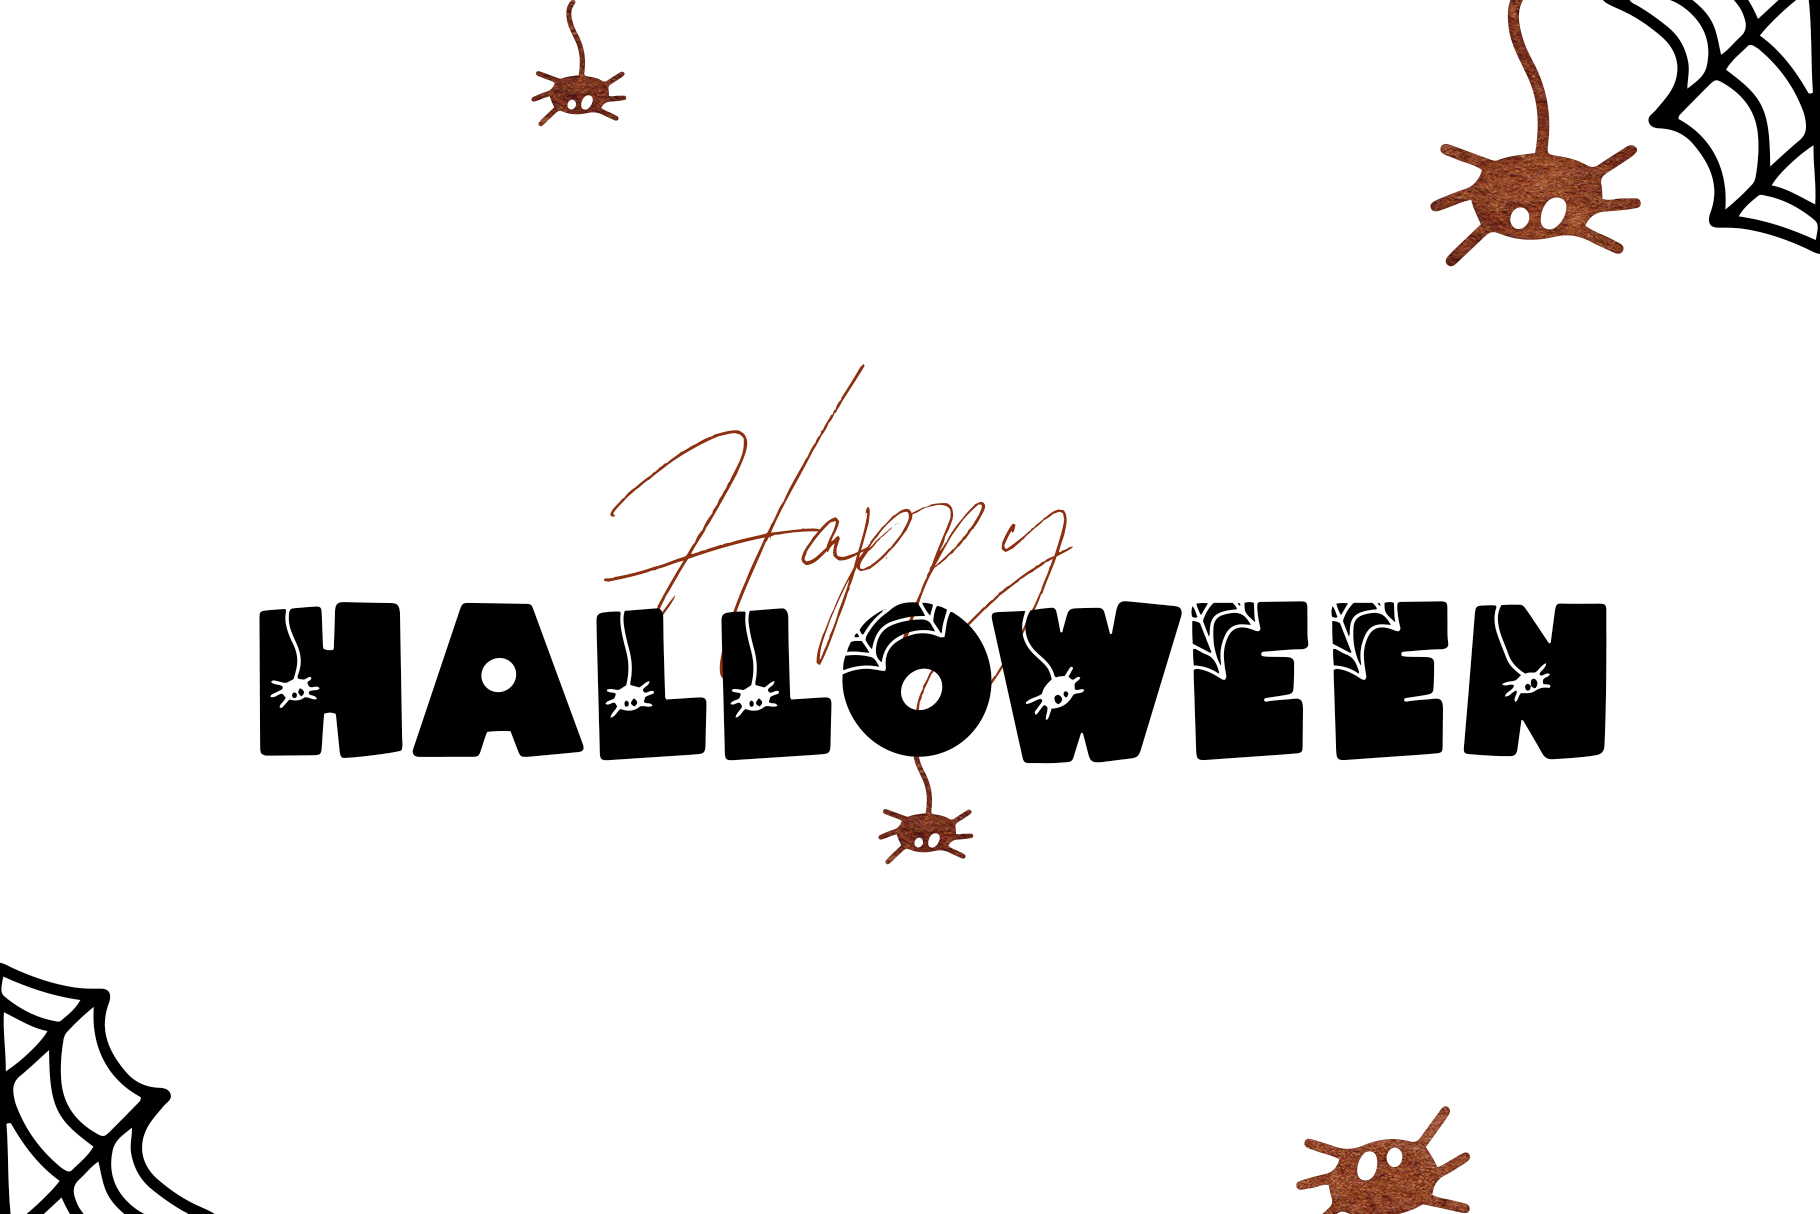 Spooky - A Quirky Halloween Font example image 11